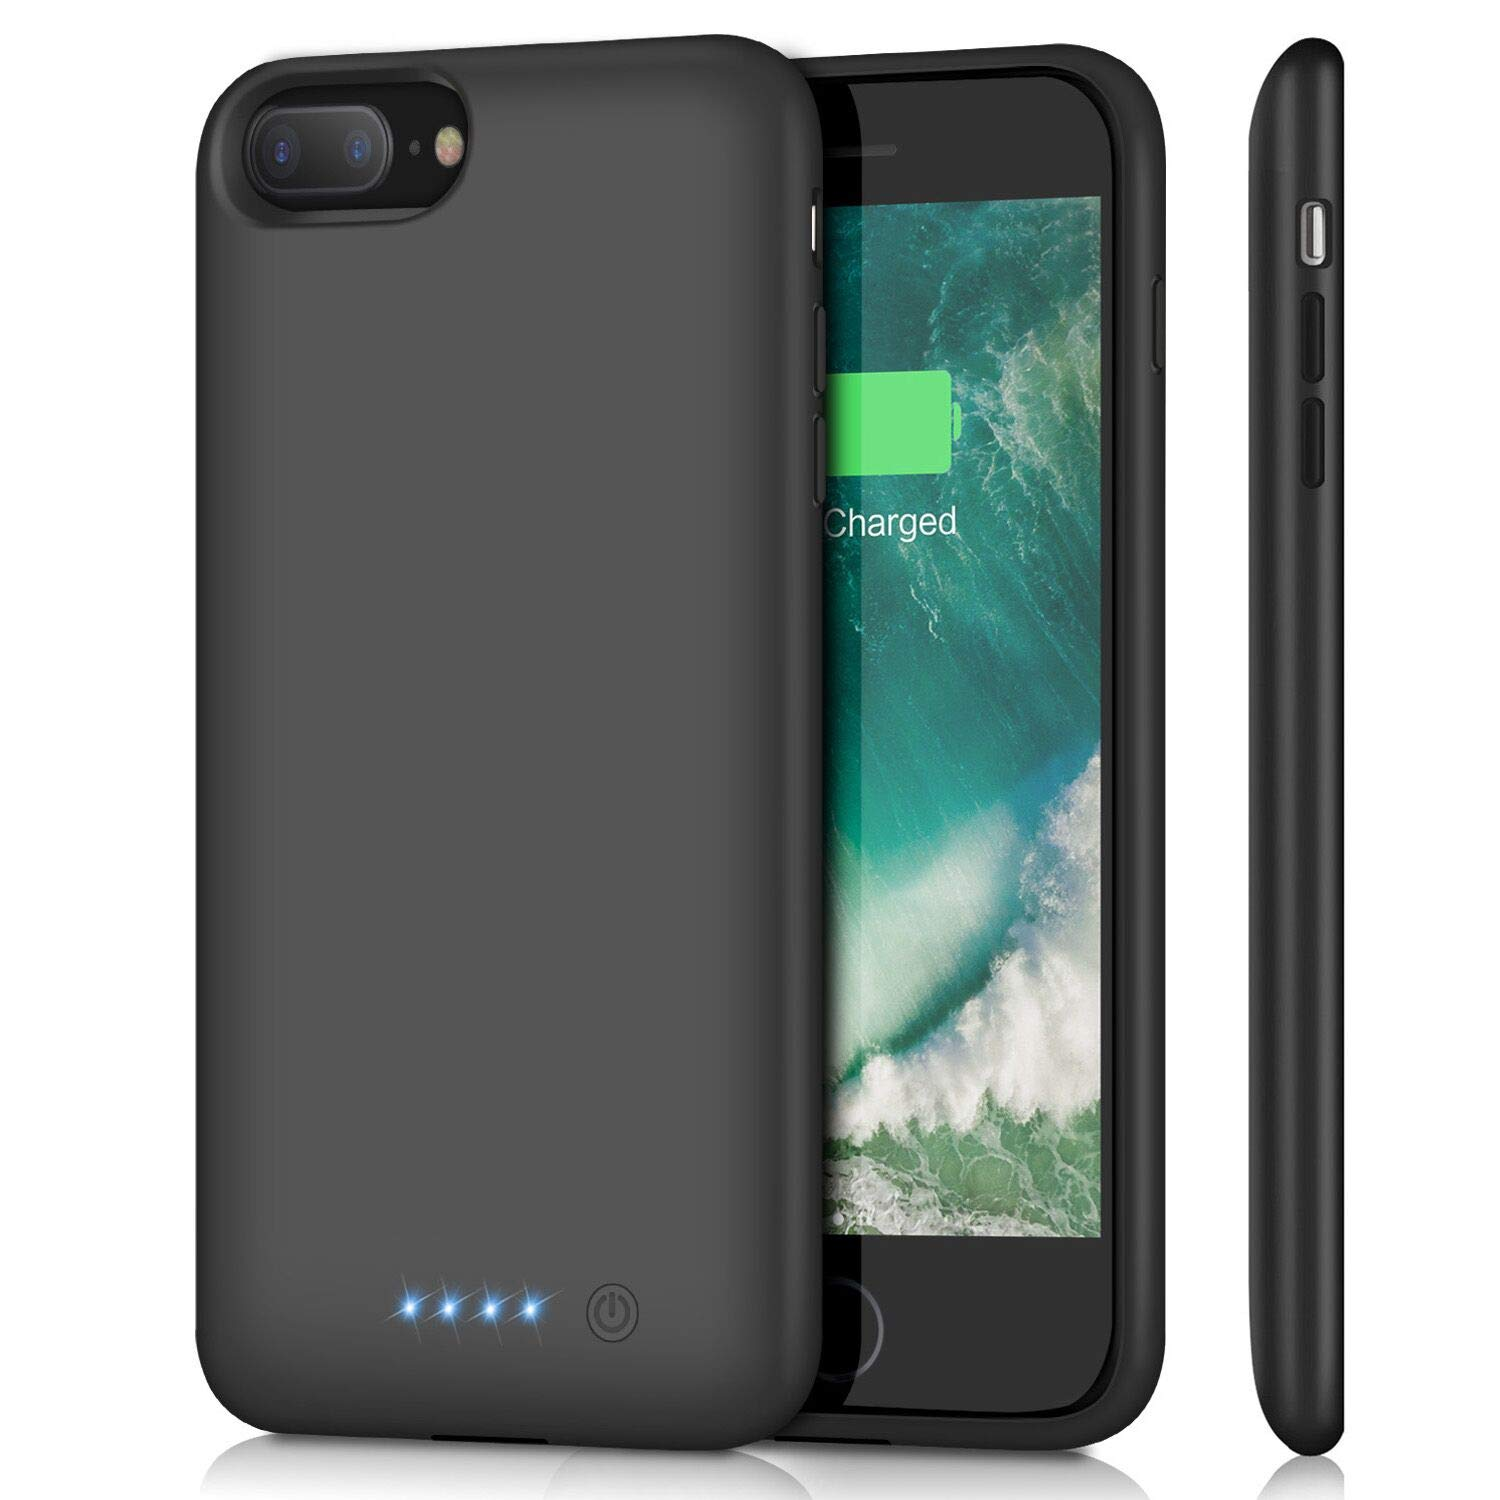 Battery Case for iPhone 8 Plus/ 7 Plus 8500mAh,Upgraded HETP Protective Rechargeable Extended Battery Pack for iPhone 7Plus Charging Case for Apple iPhone 8Plus Portable Power Bank (5.5 inch ) - Black by HETP